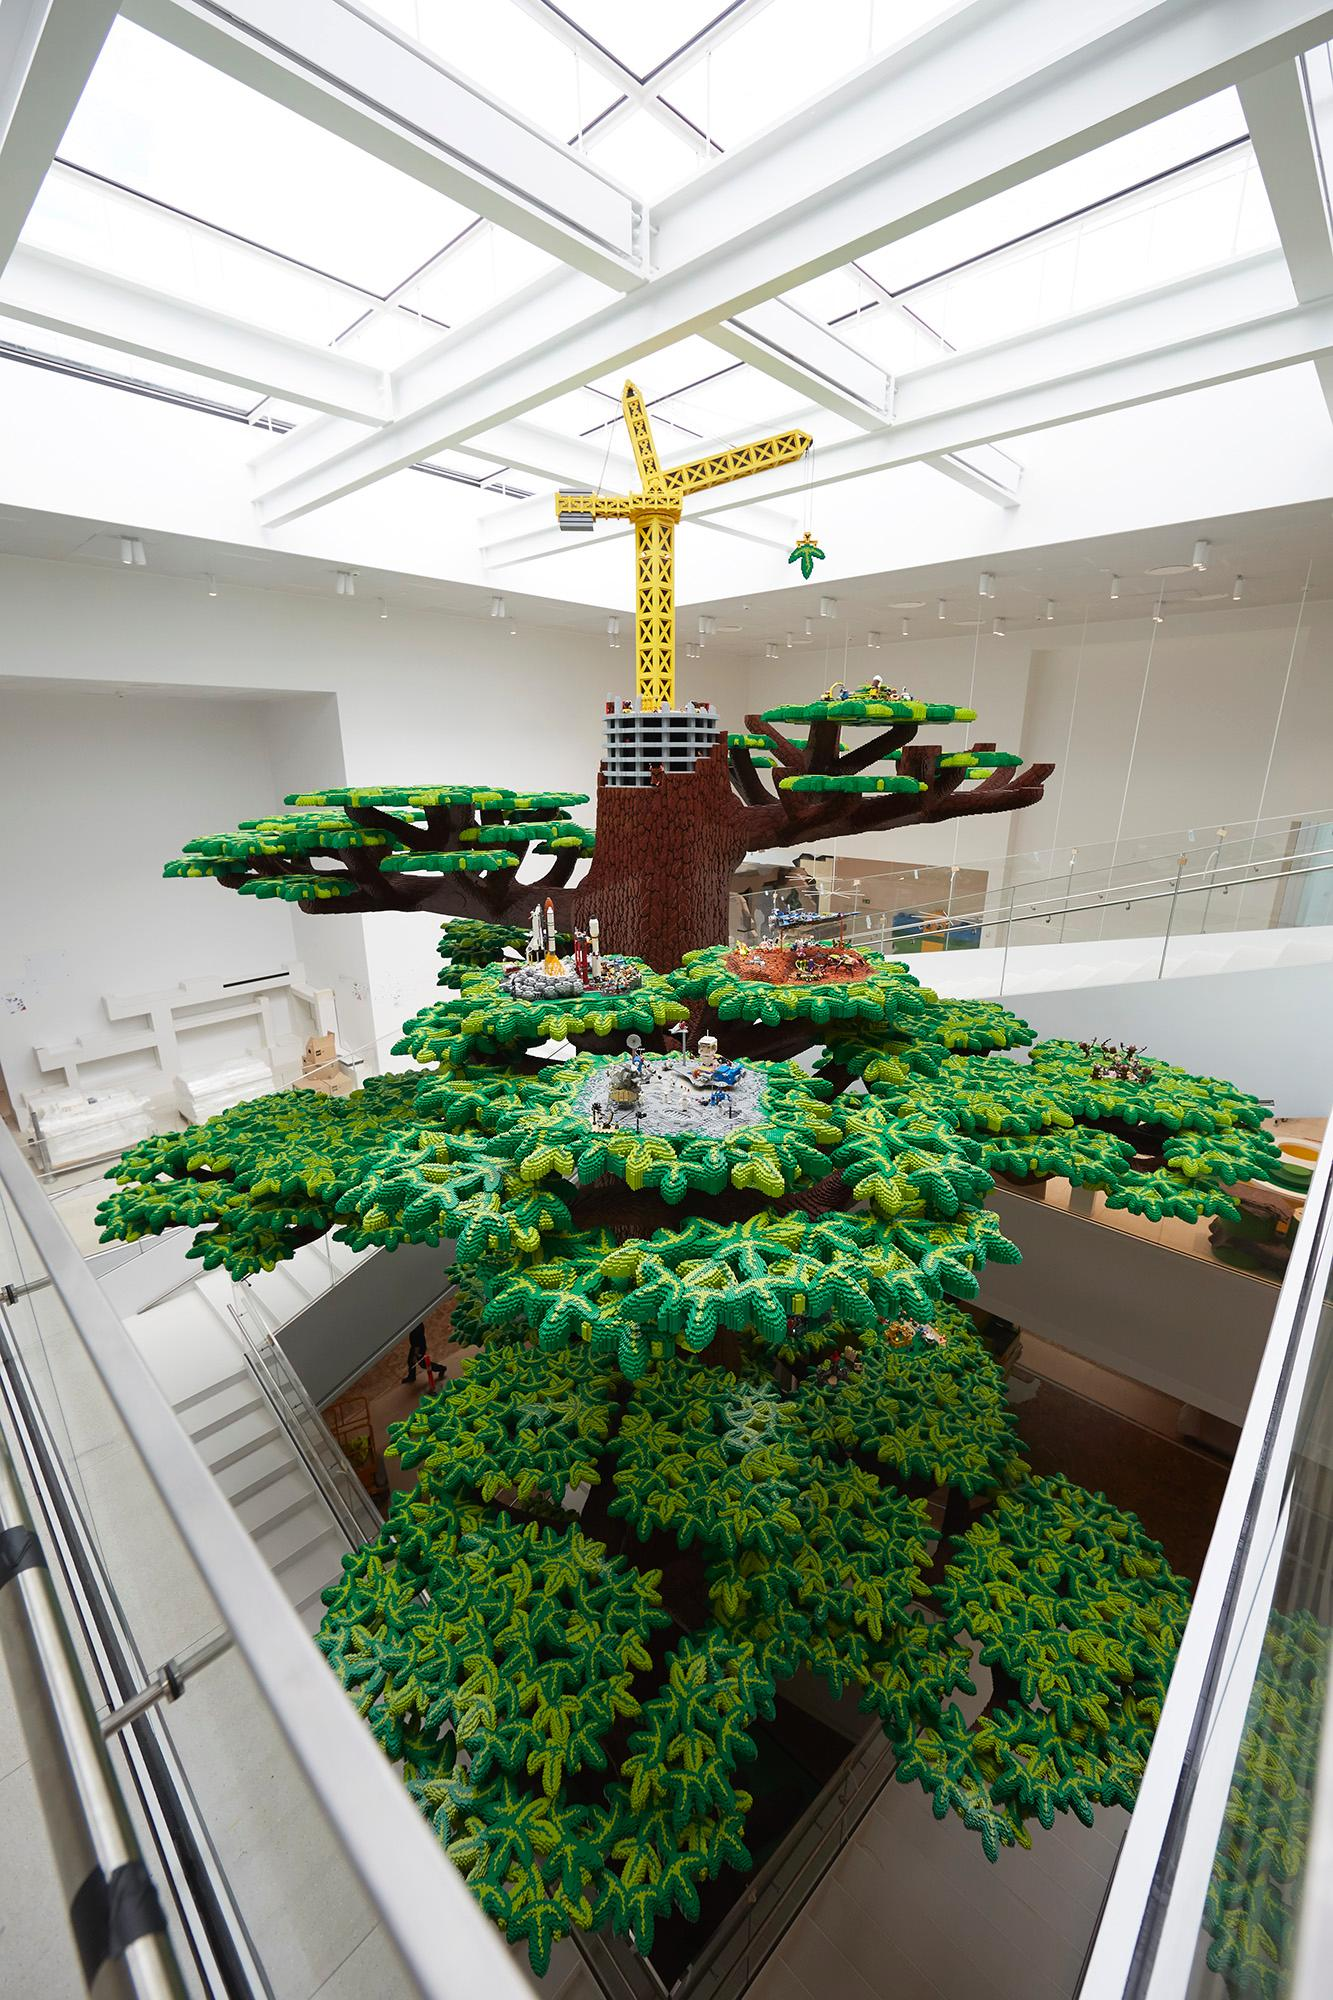 The building is conceptually anchored by a 15m tall Tree of Creativity built entirely from Lego / Lego Group